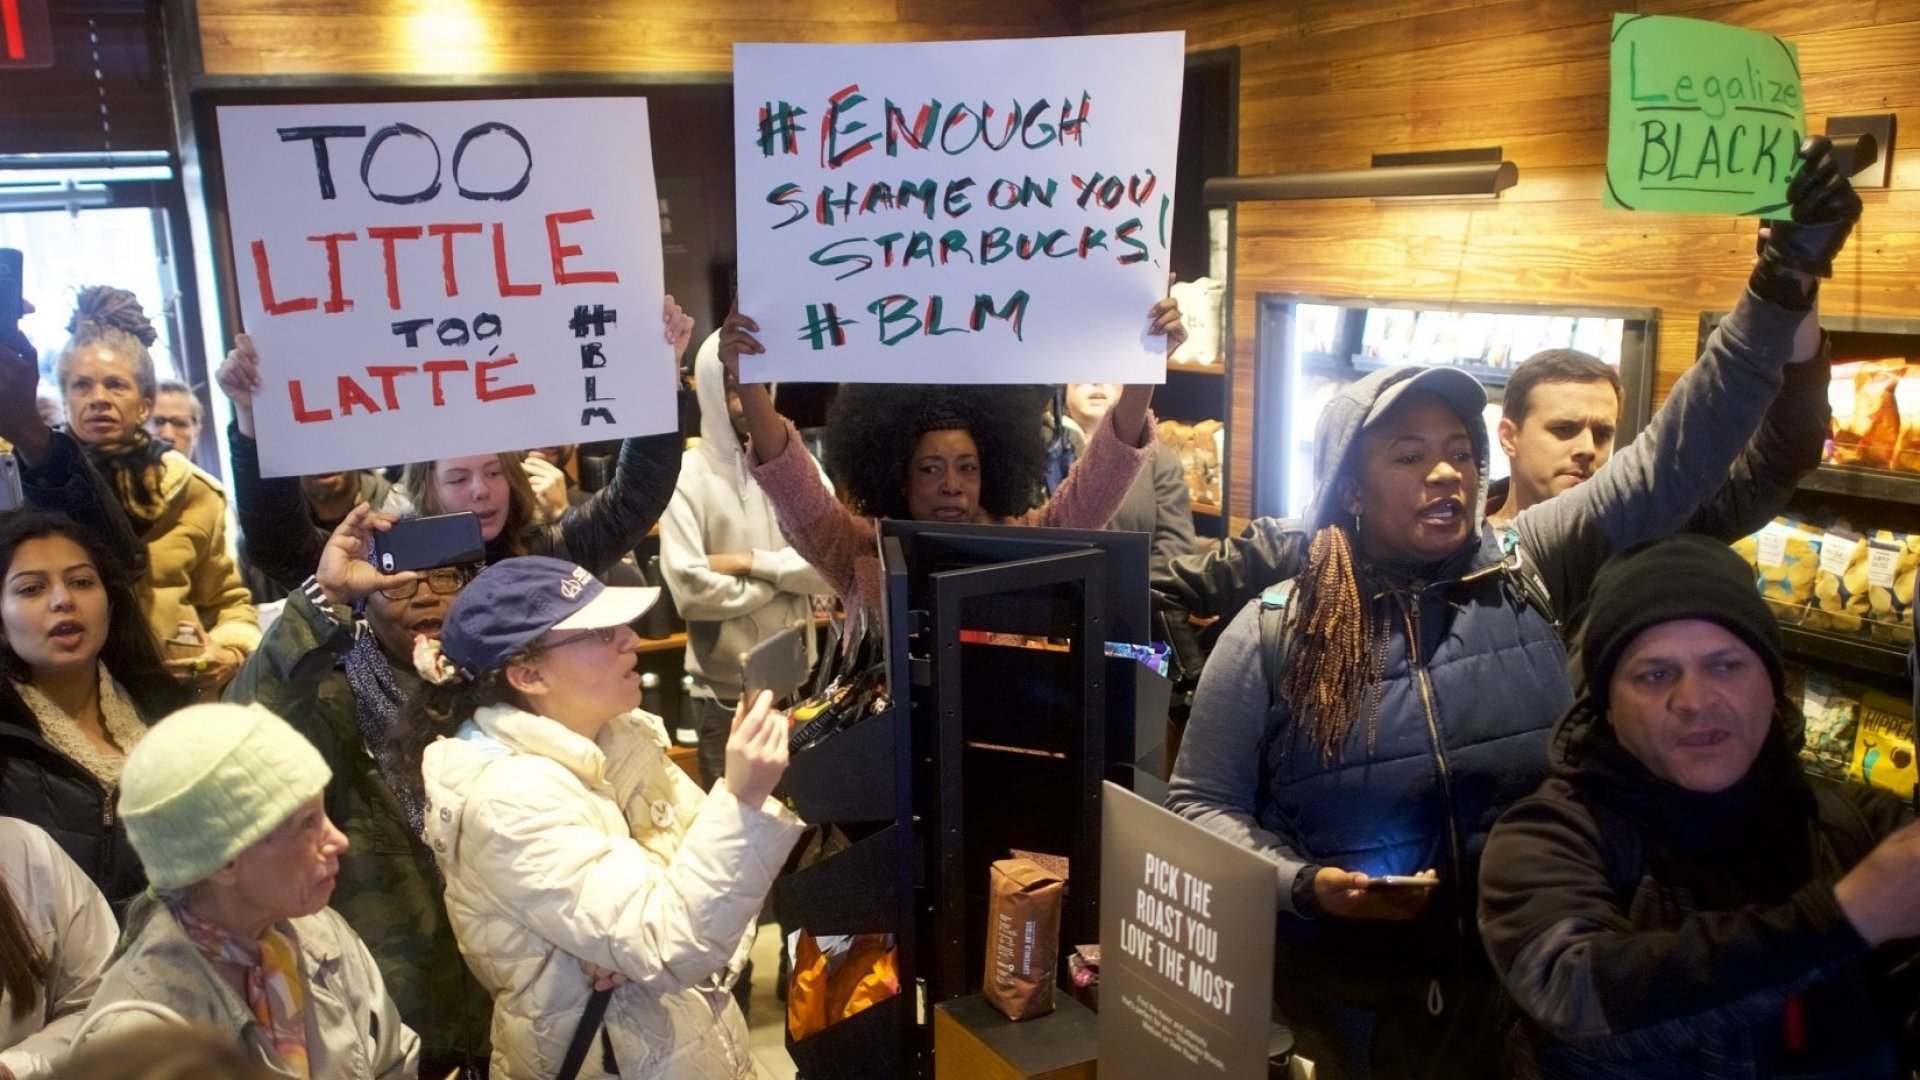 Experts Tell Starbucks 1 Anti-Bias Training Session Is Not Enough, But It's a Step Forward